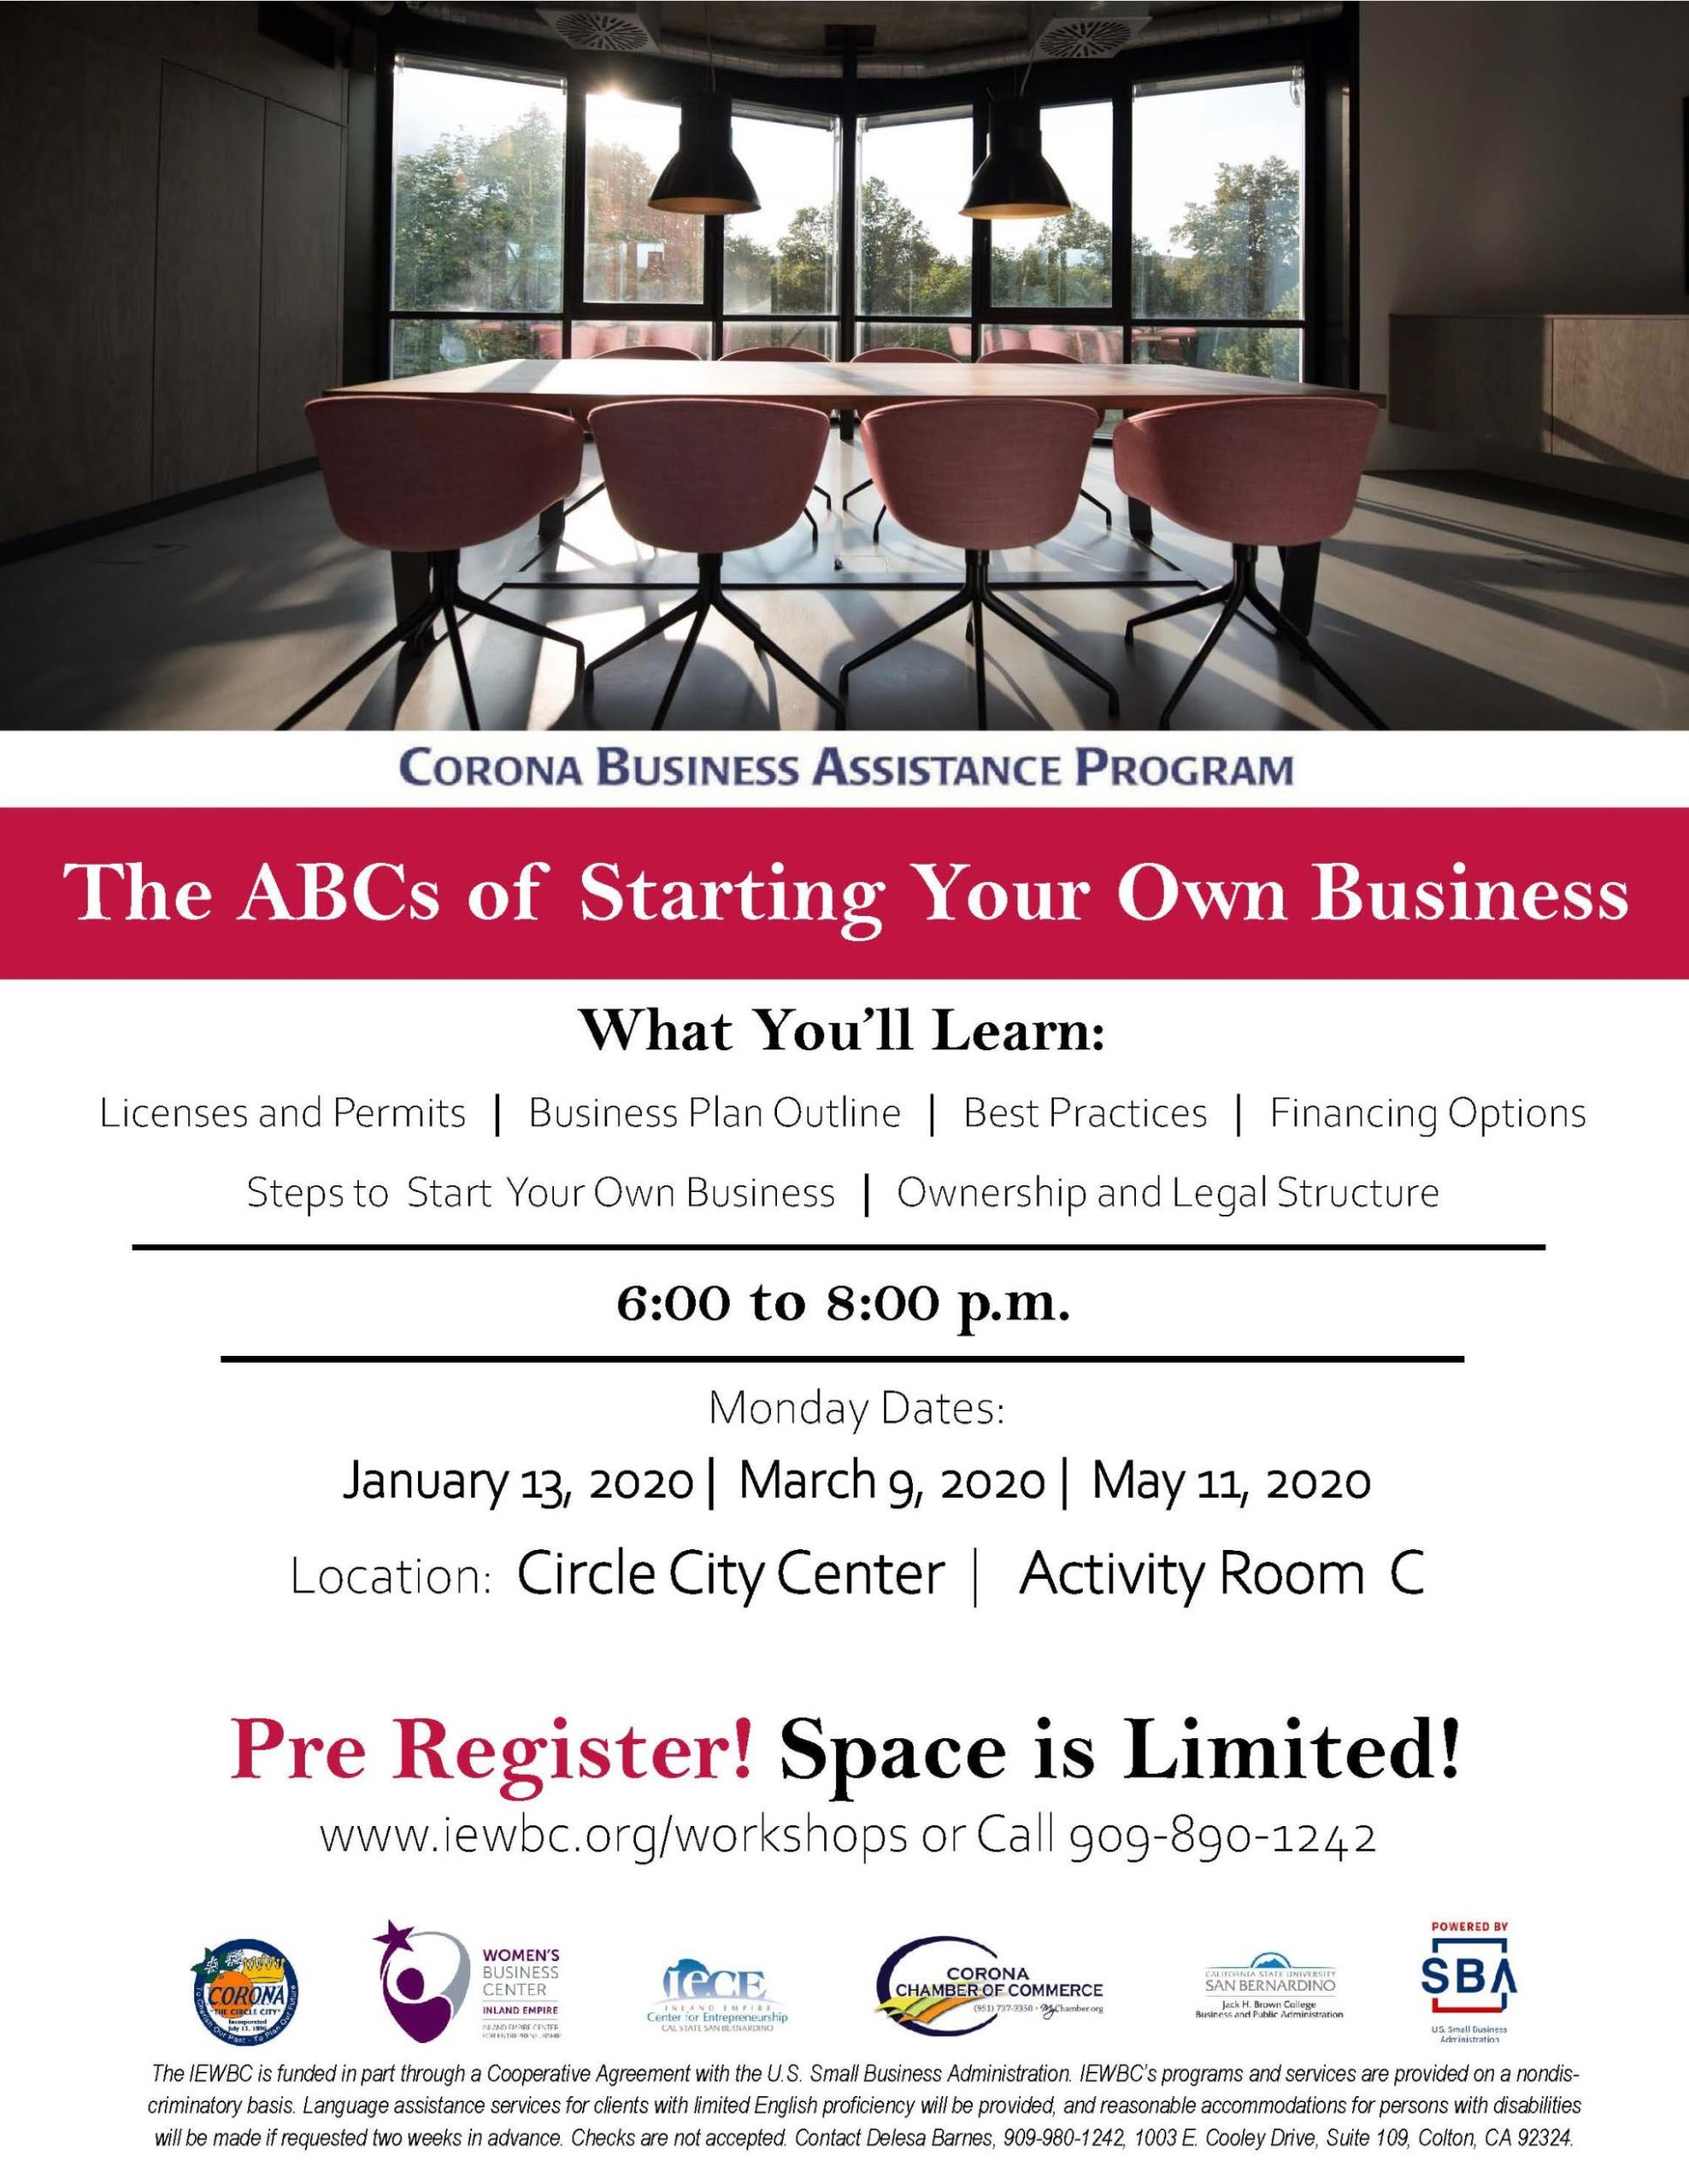 The ABCs of Starting Your Own Business